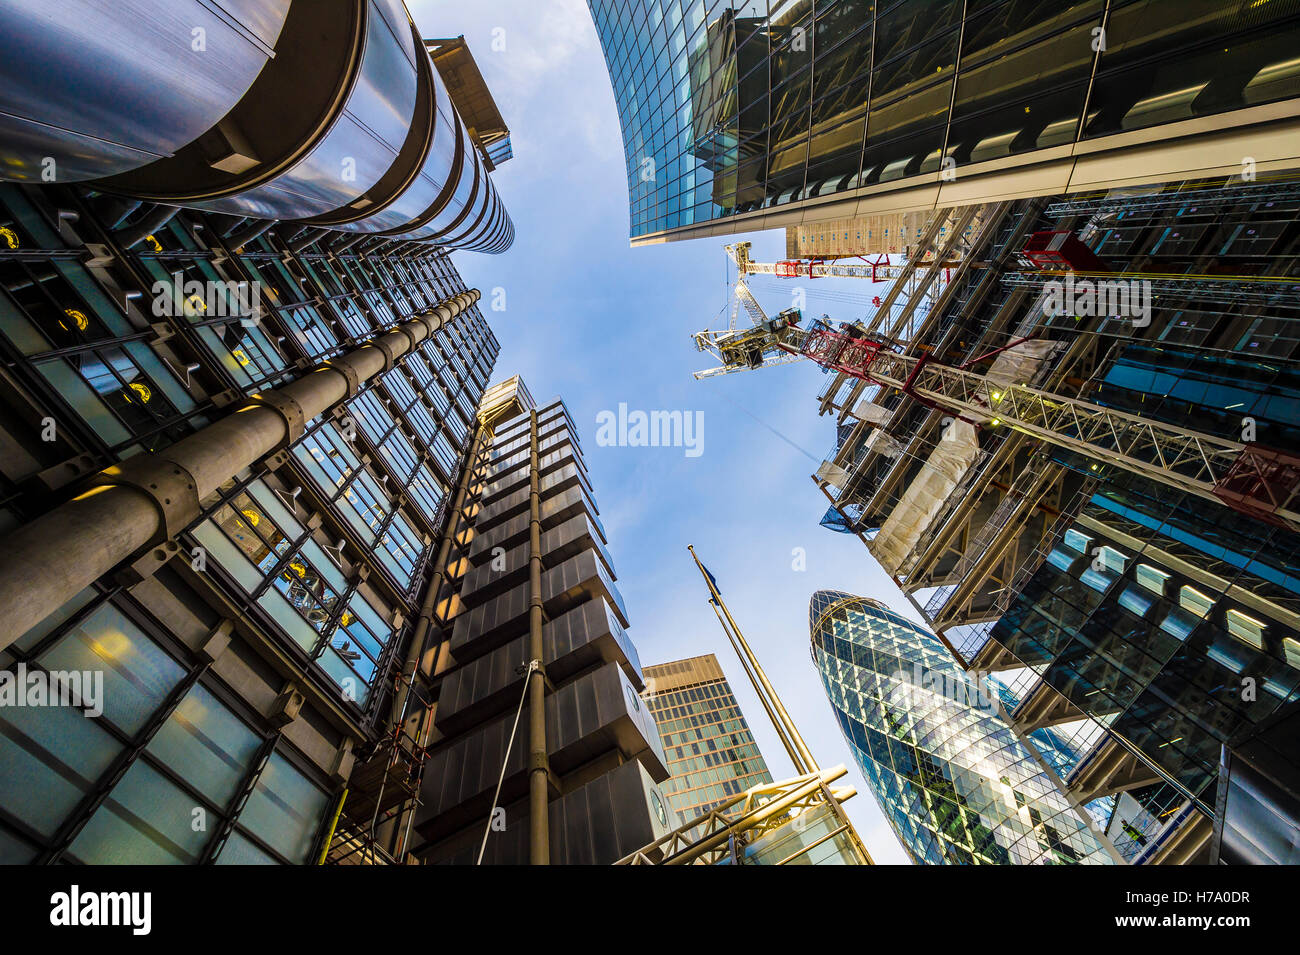 LONDON - NOVEMBER 3, 2016: The Lloyds Building and The Gherkin skyscrapers are joined by construction in the insurance - Stock Image